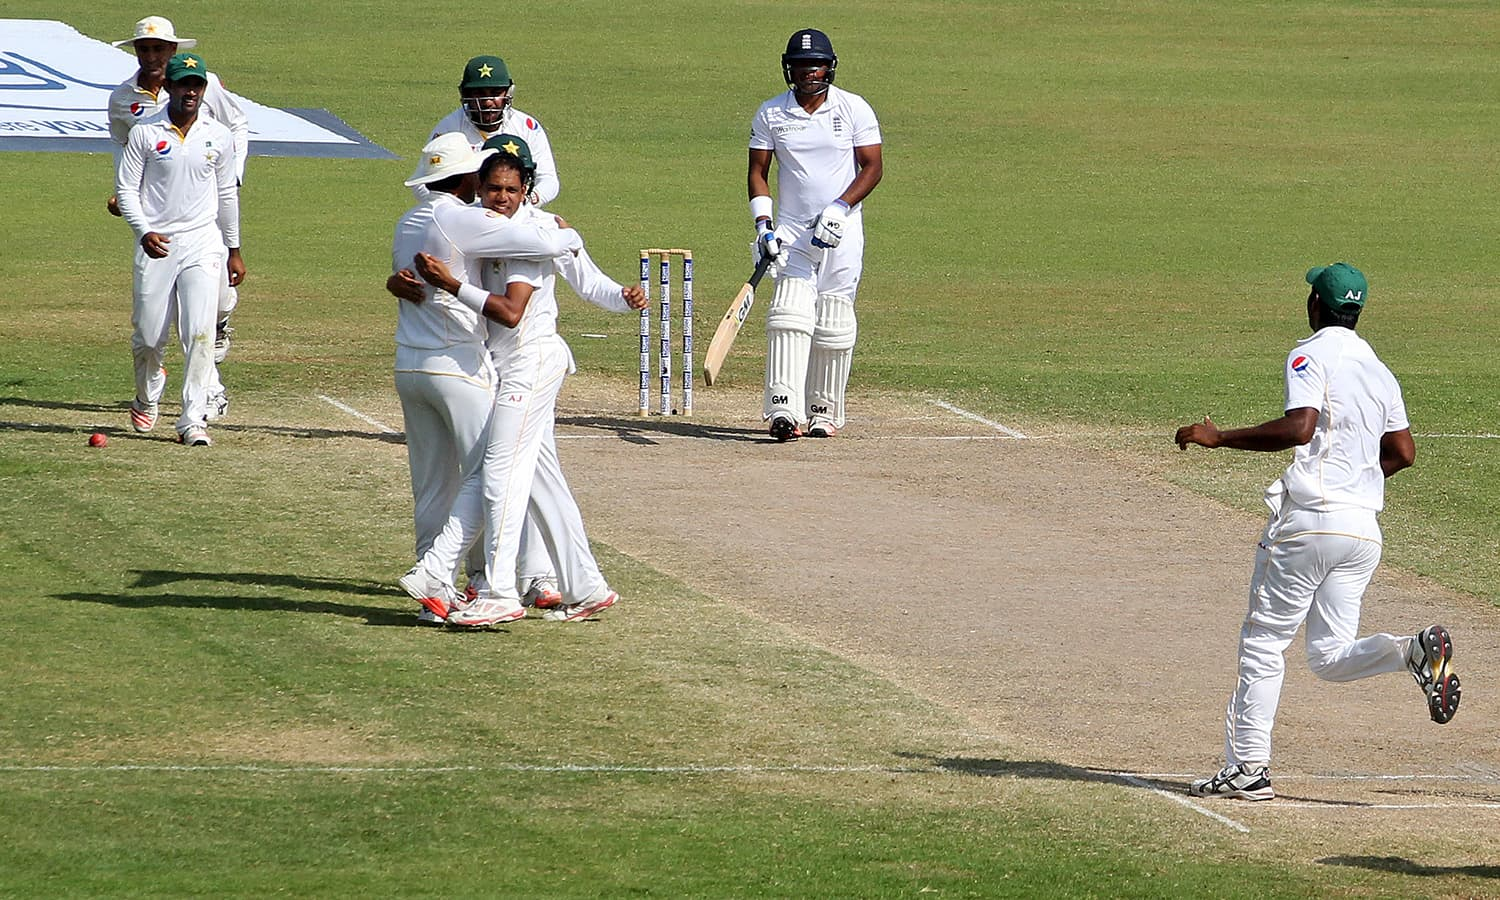 Zulfiqar Babar celebrates the wicket of England's Samit Patel. — Reuters